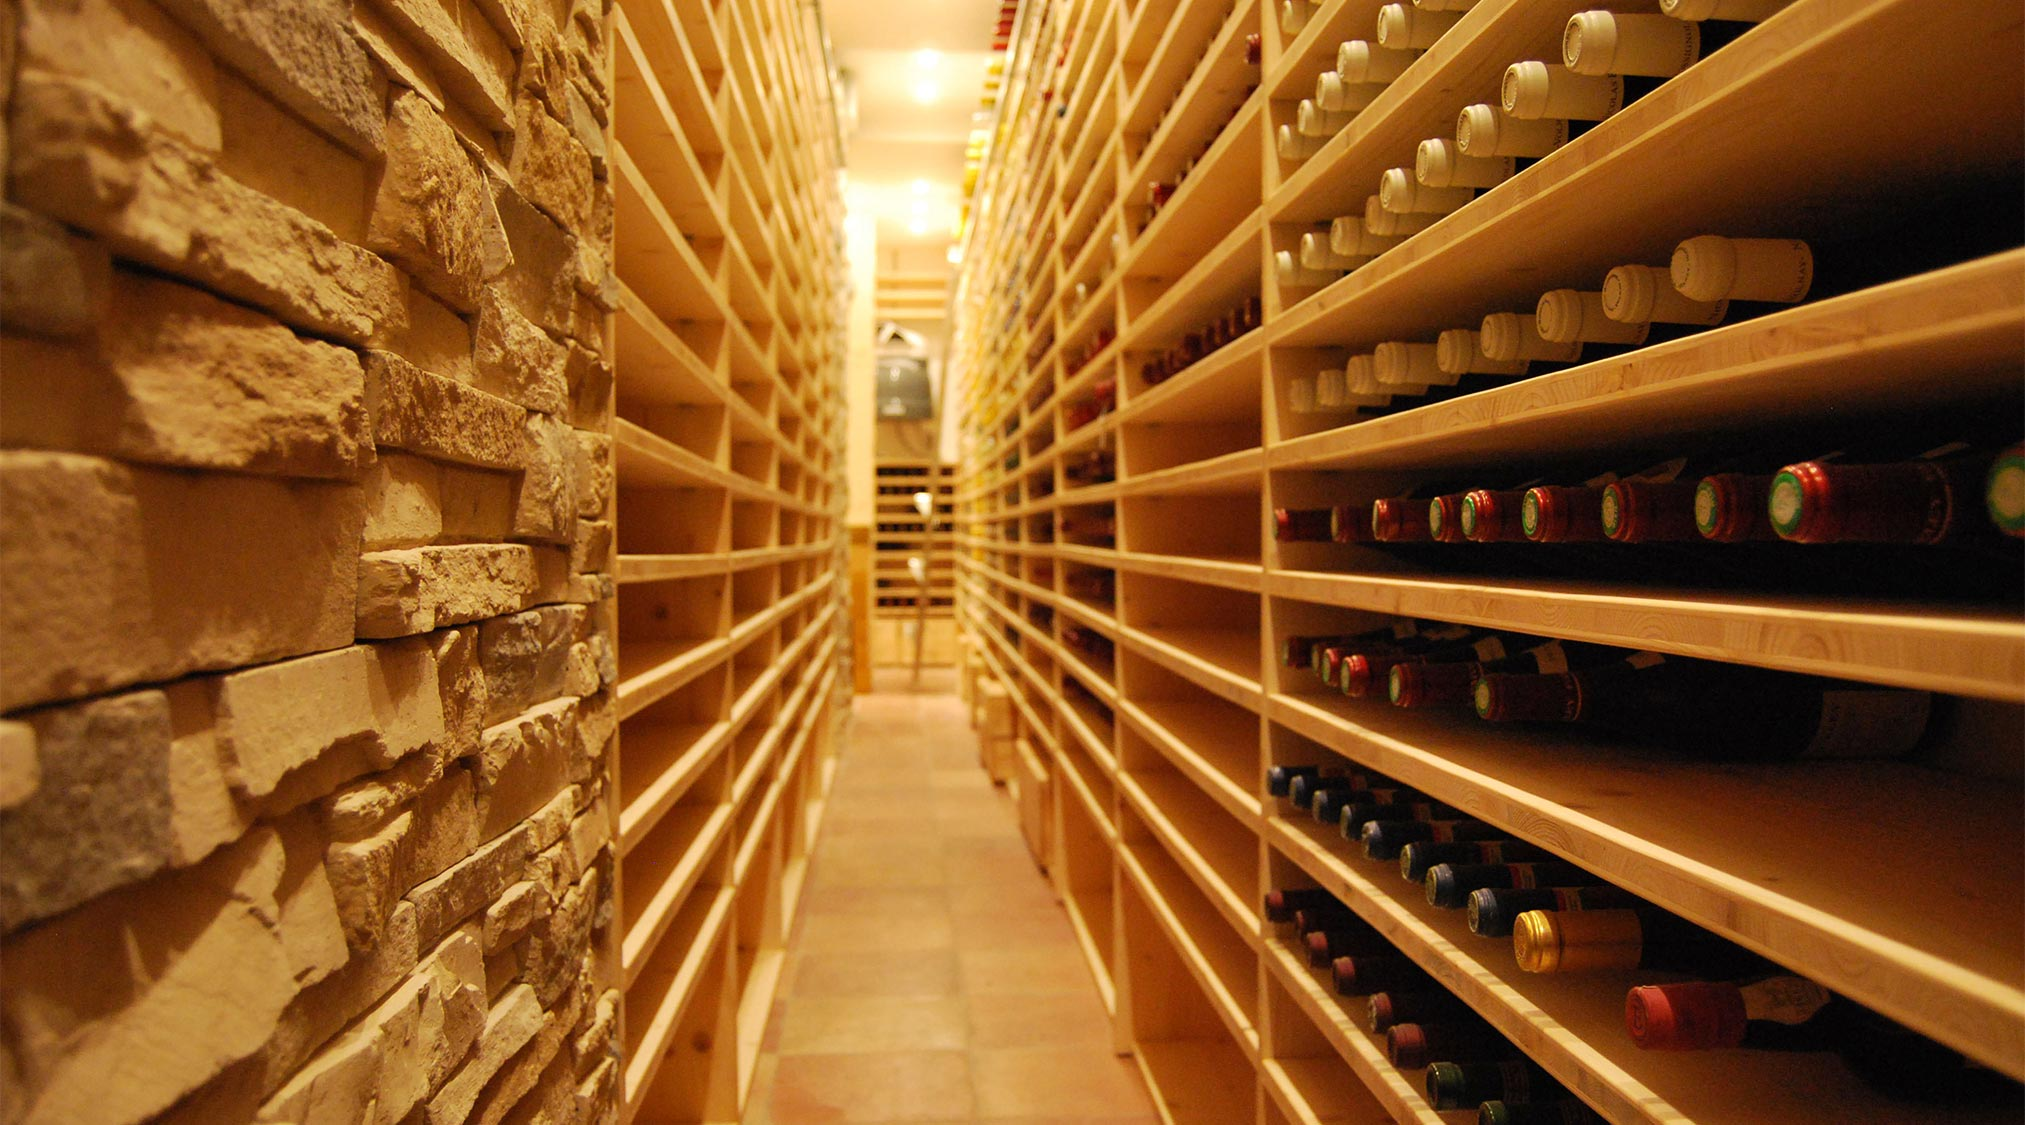 shelves for bottles